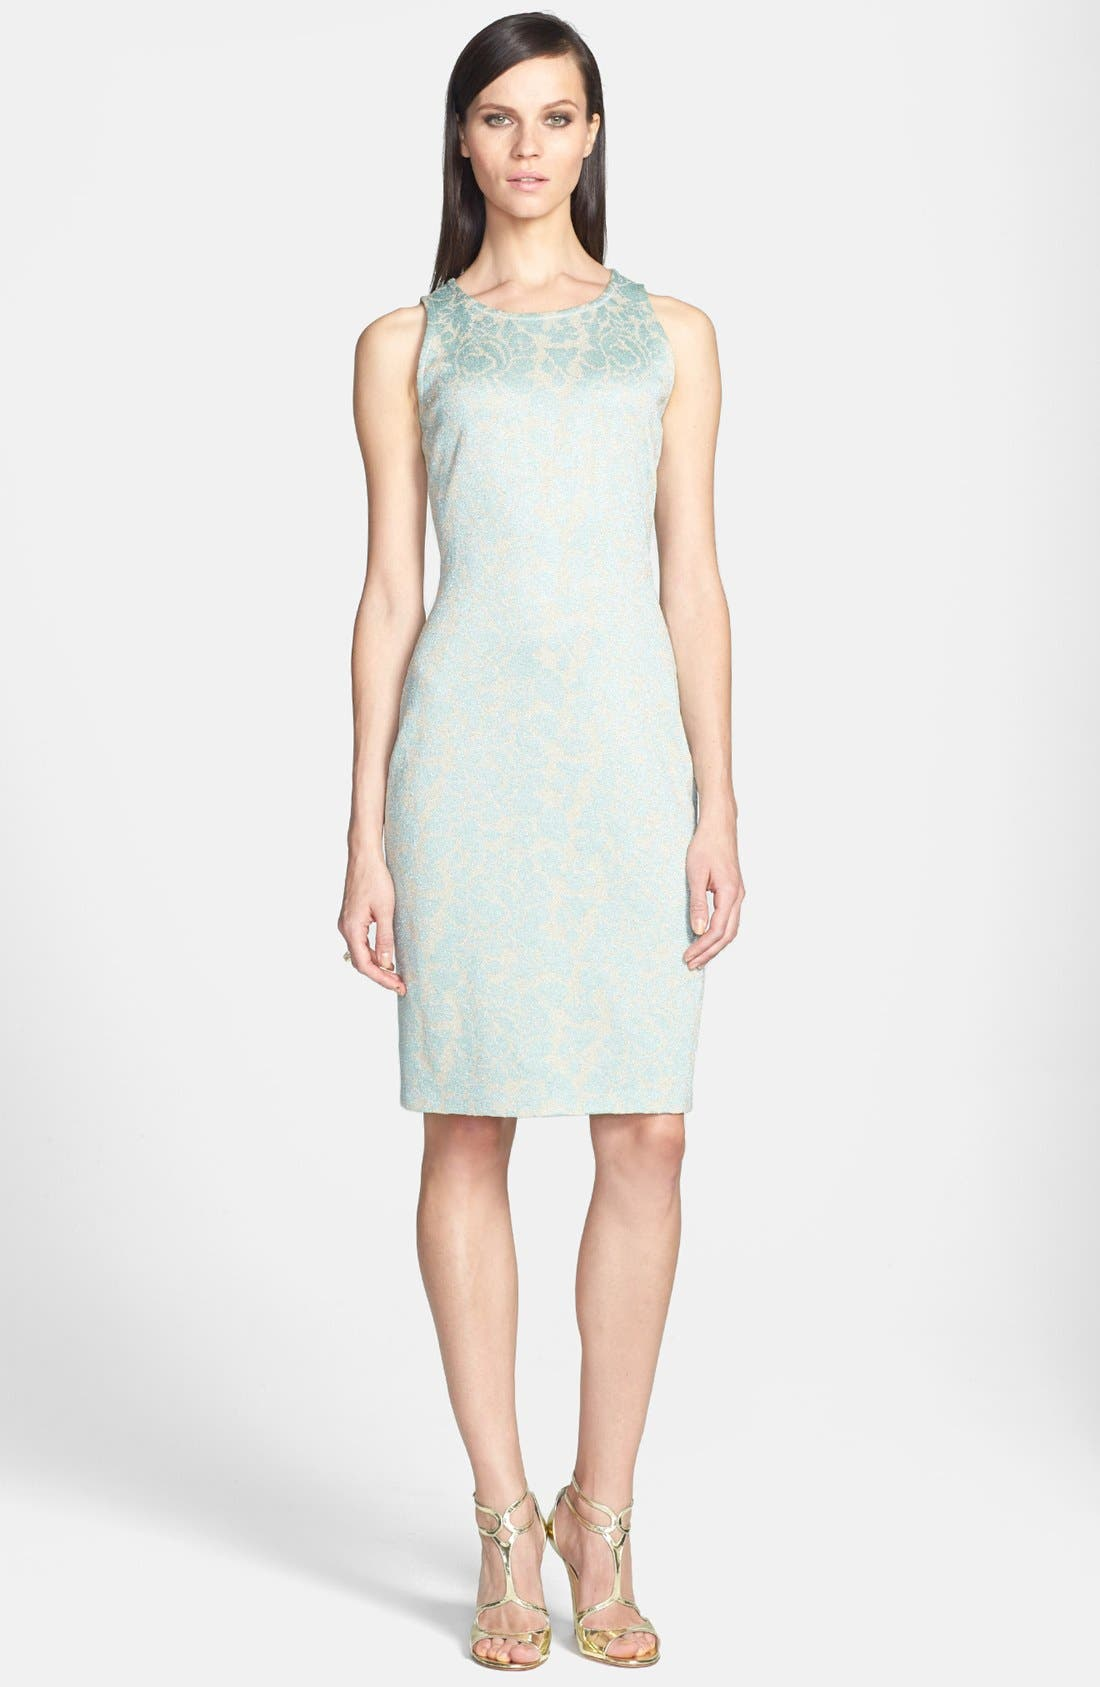 Main Image - St. John Collection Metallic Floral Jacquard Knit Sheath Dress